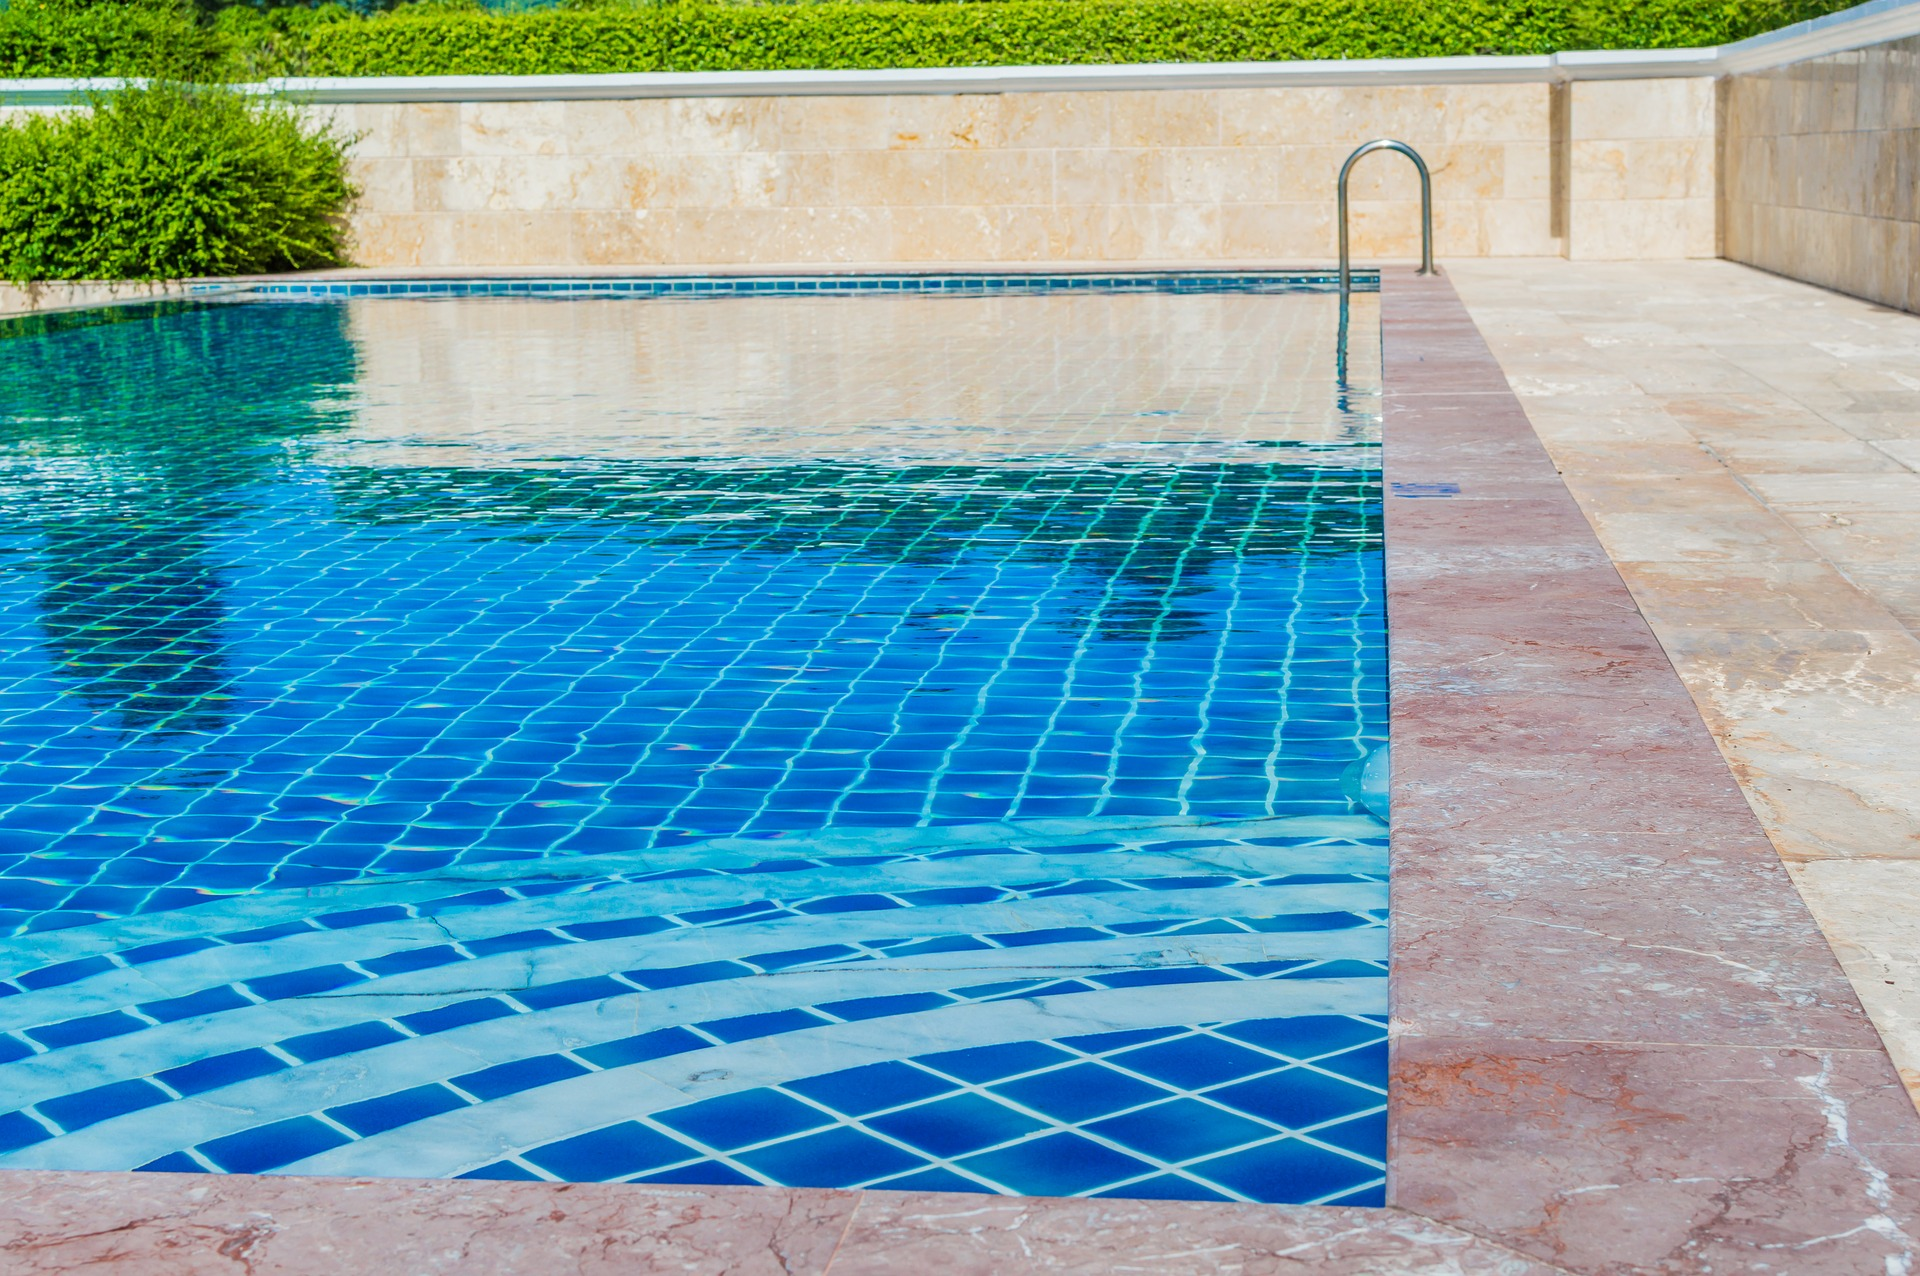 how much does it cost to build a swimming pool in Kenya